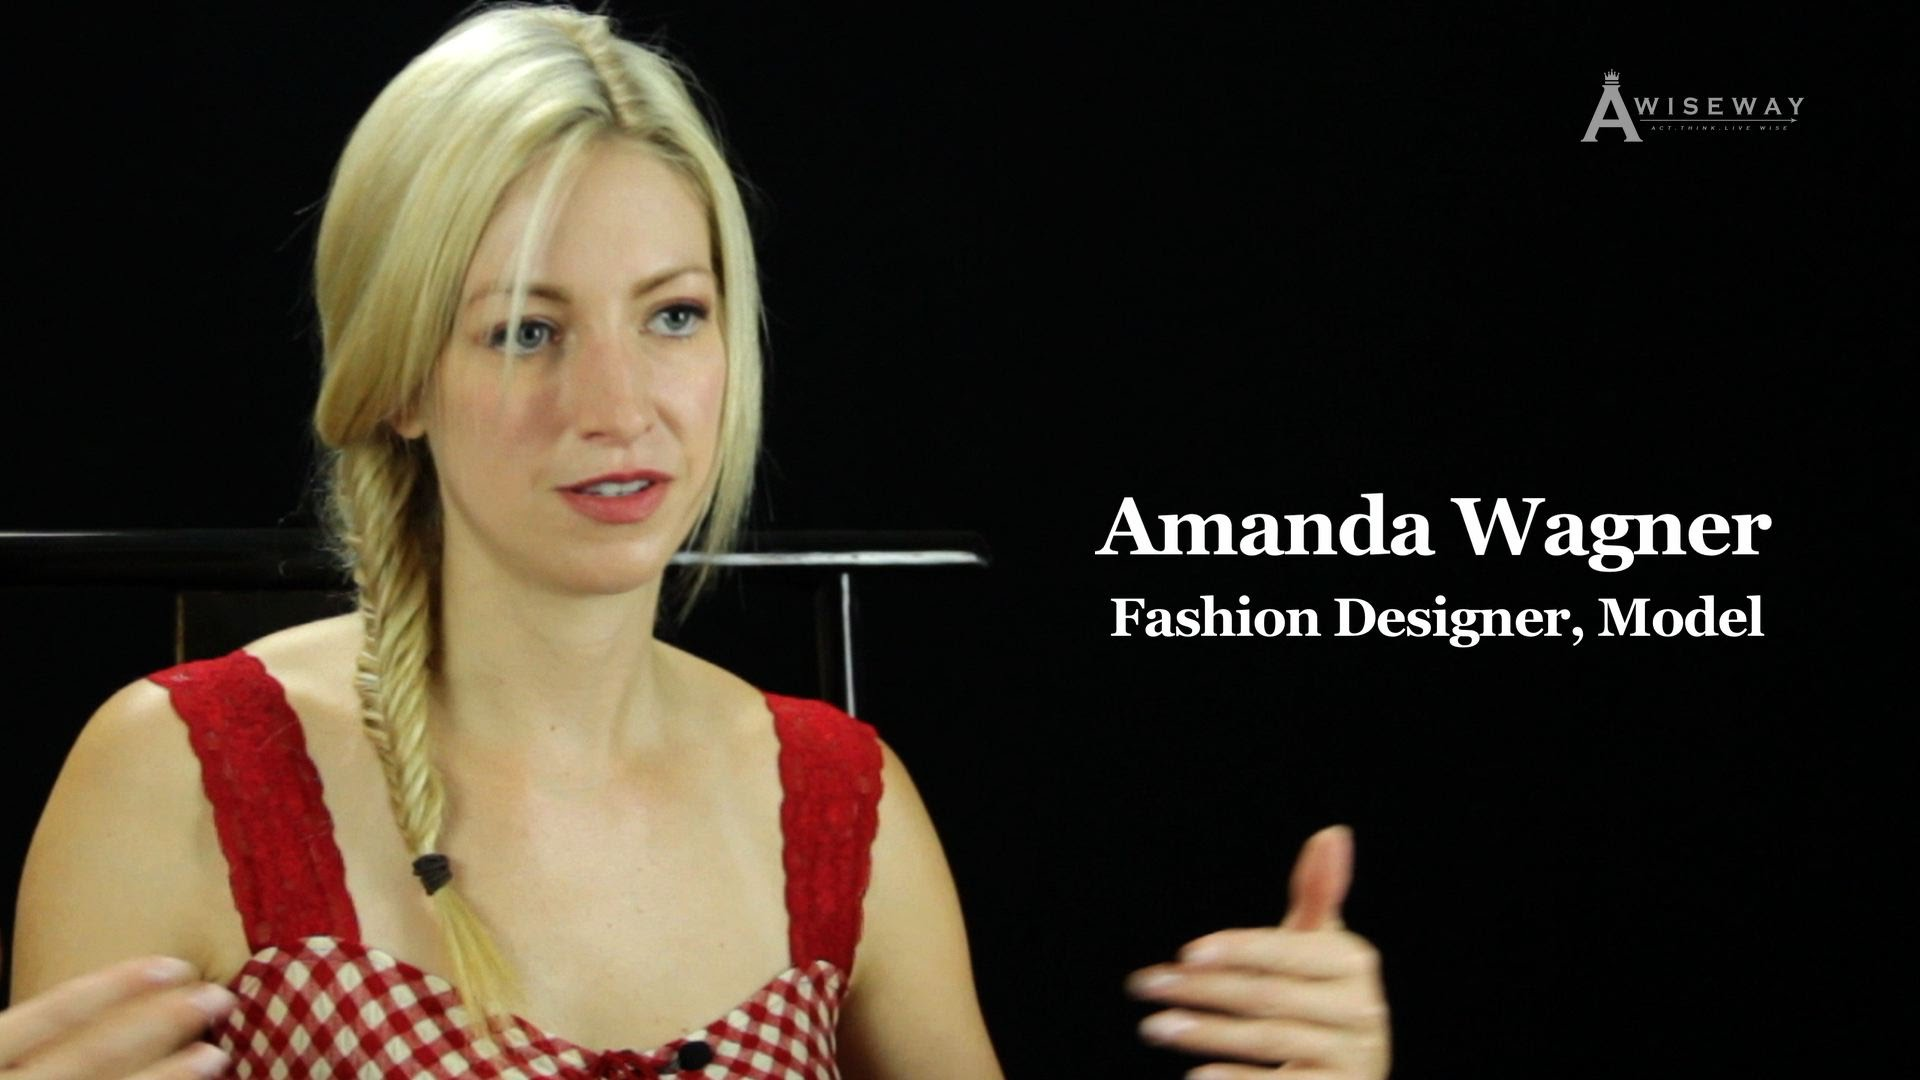 Fashion Designer and Model Explains How Her Family Inspired Her Creativity